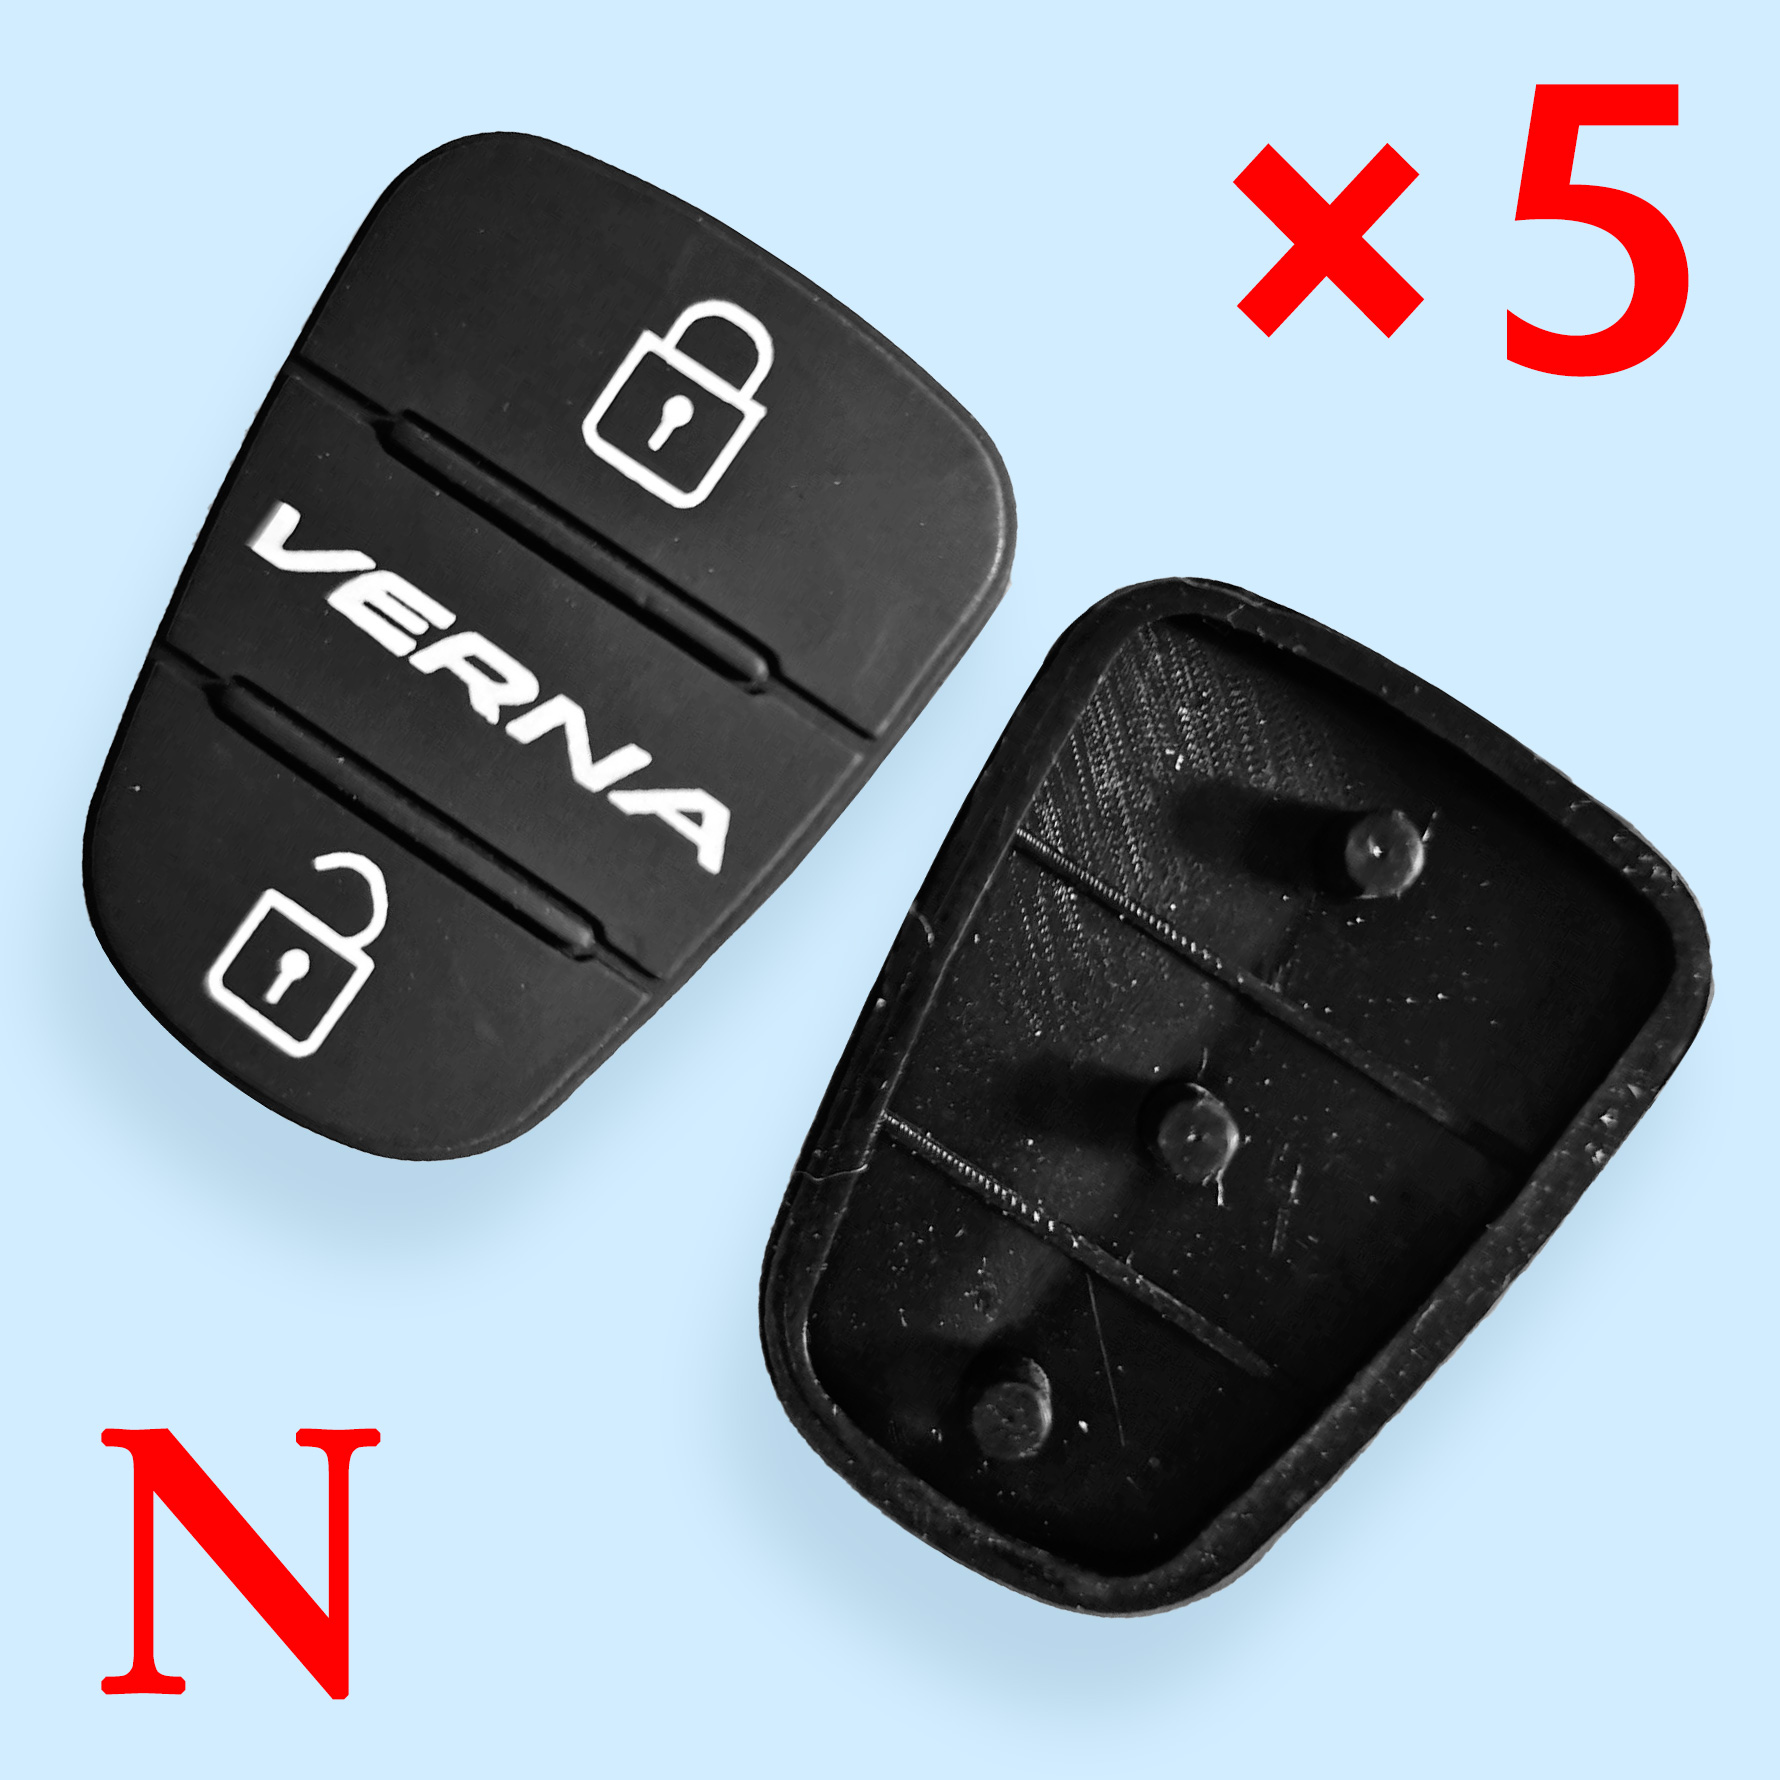 3 Buttons Rubber Pad for Hyundai  - 5pcs